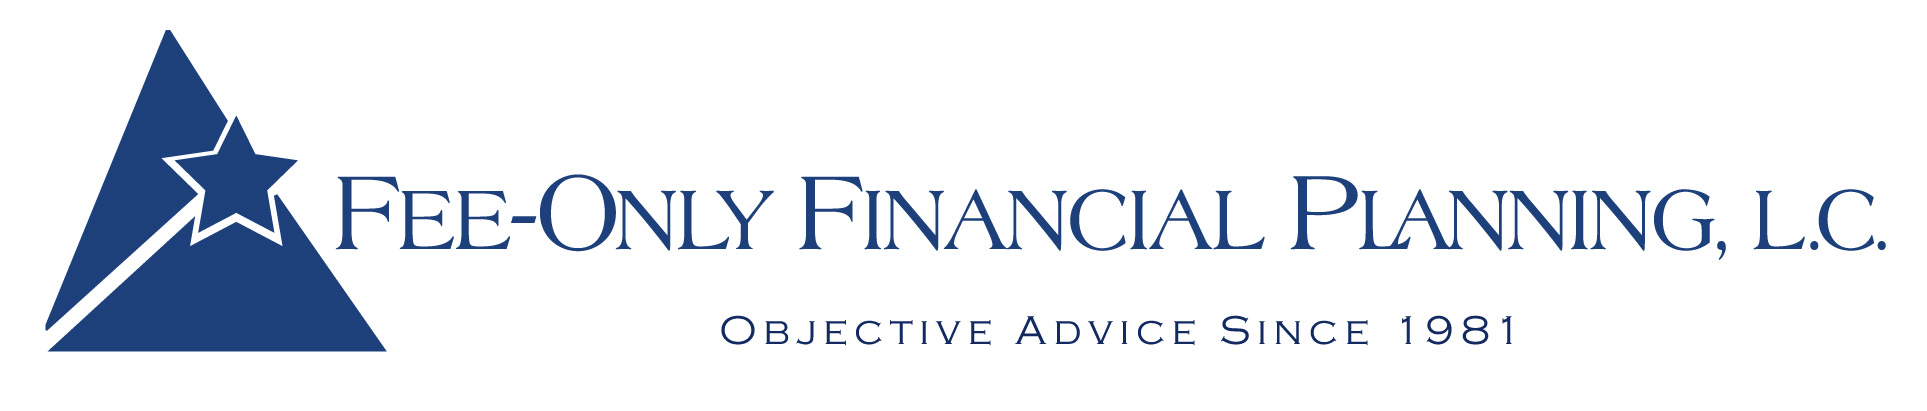 Fee-Only Financial Planning, L.C.